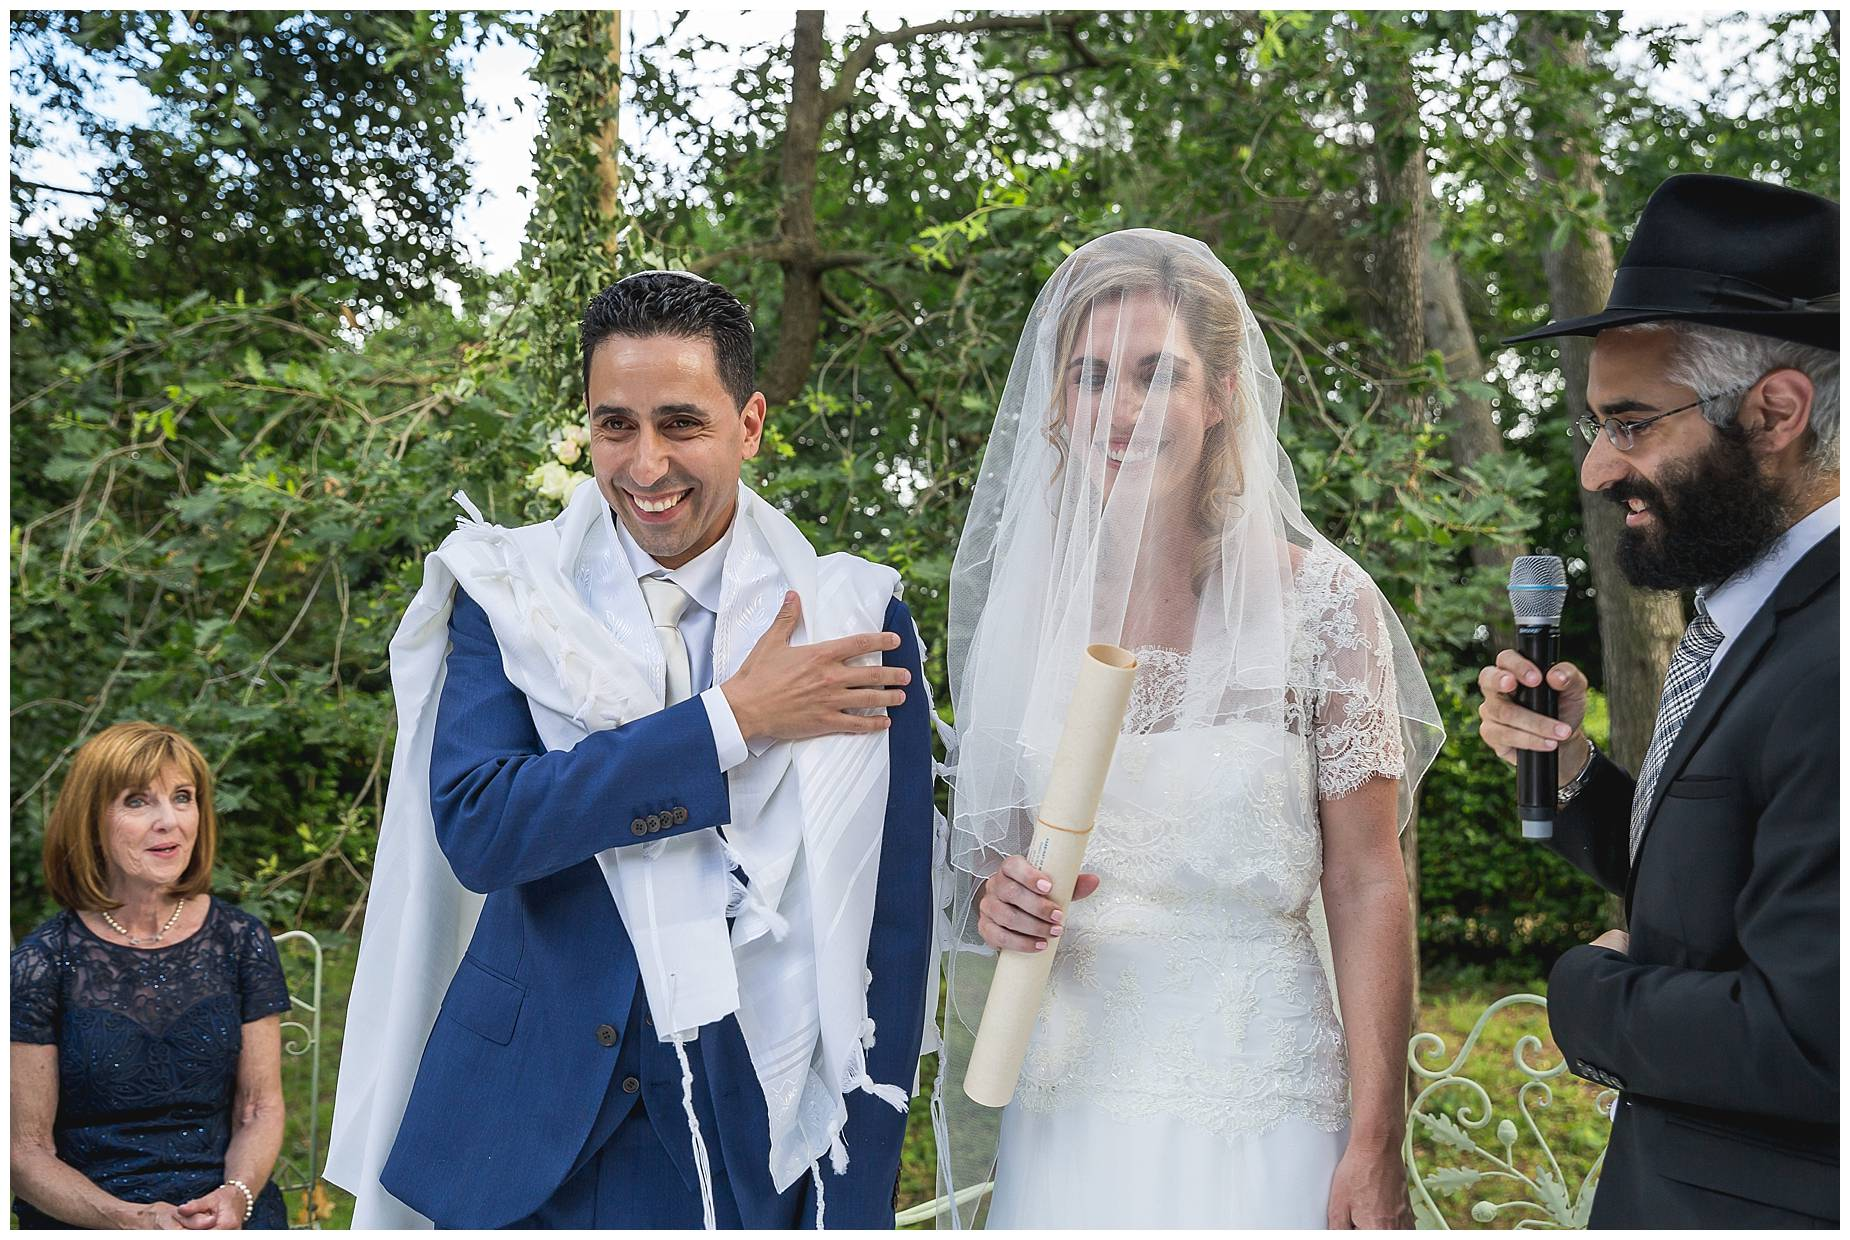 Bride and groom in Jewish ceremony at Chateau de Pouget